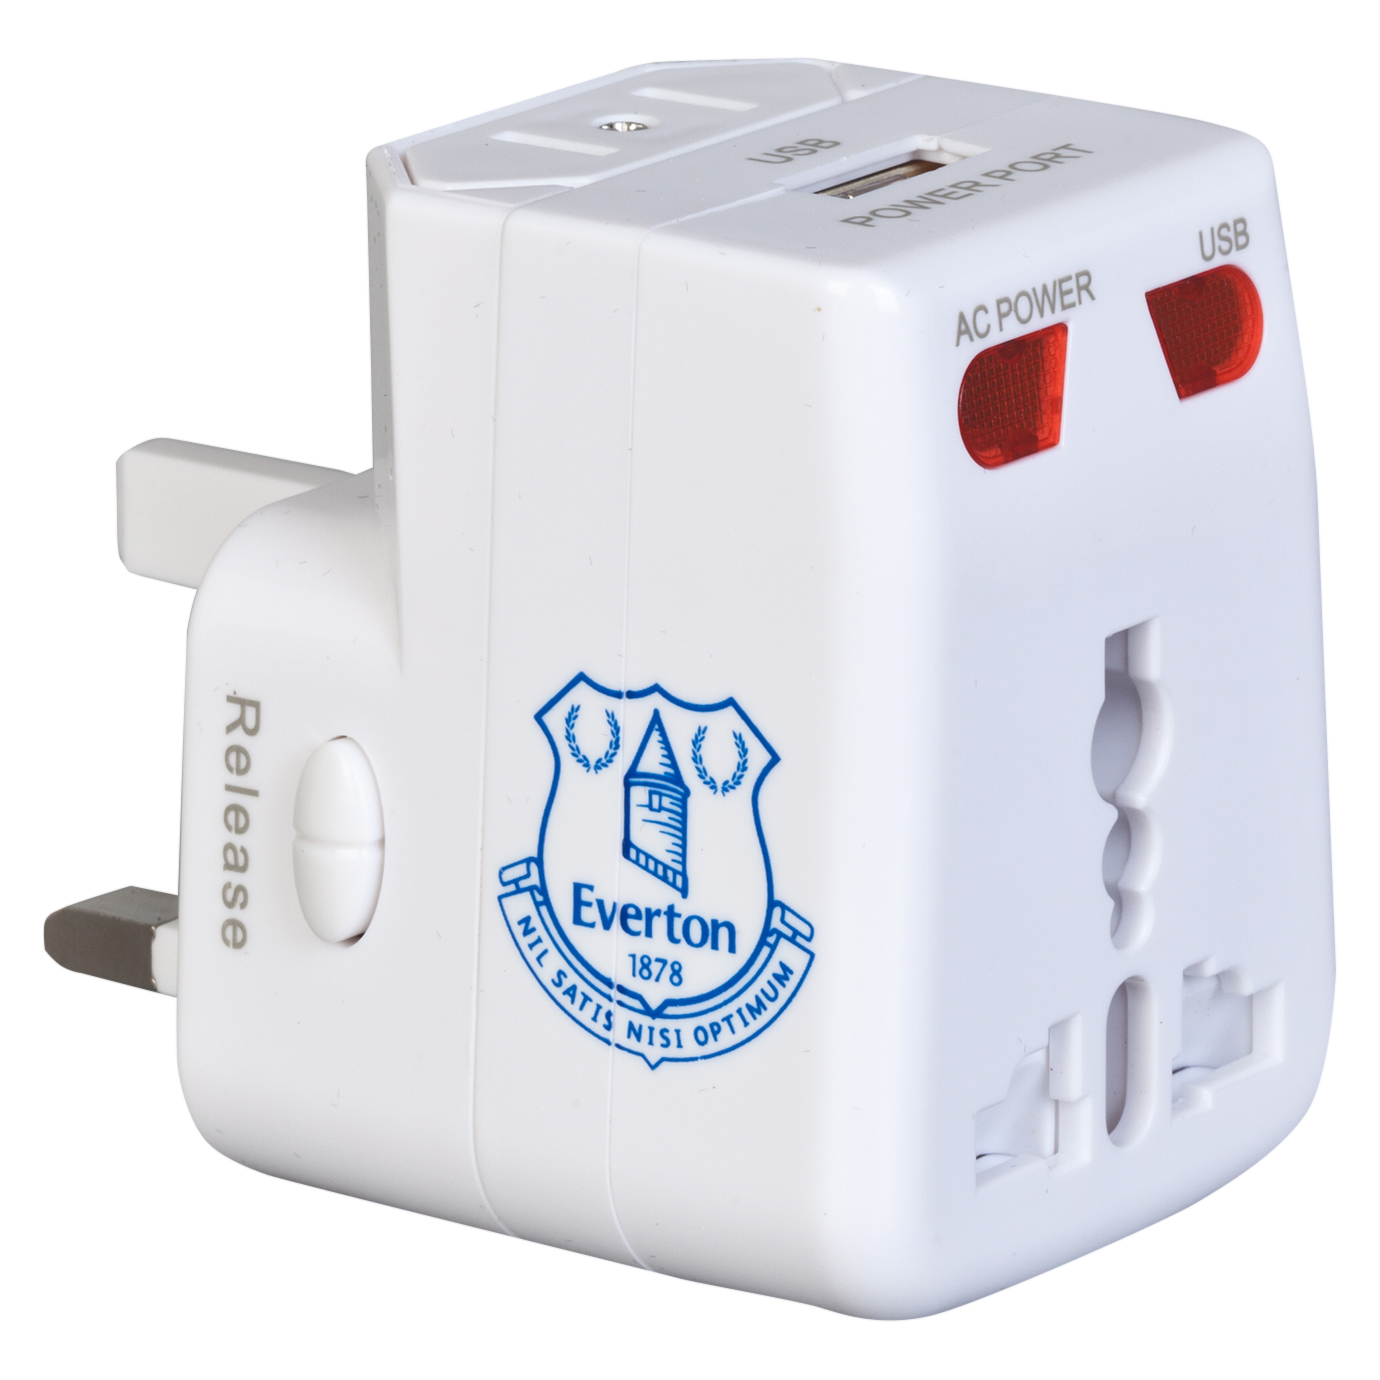 Everton USB Adaptor Plug